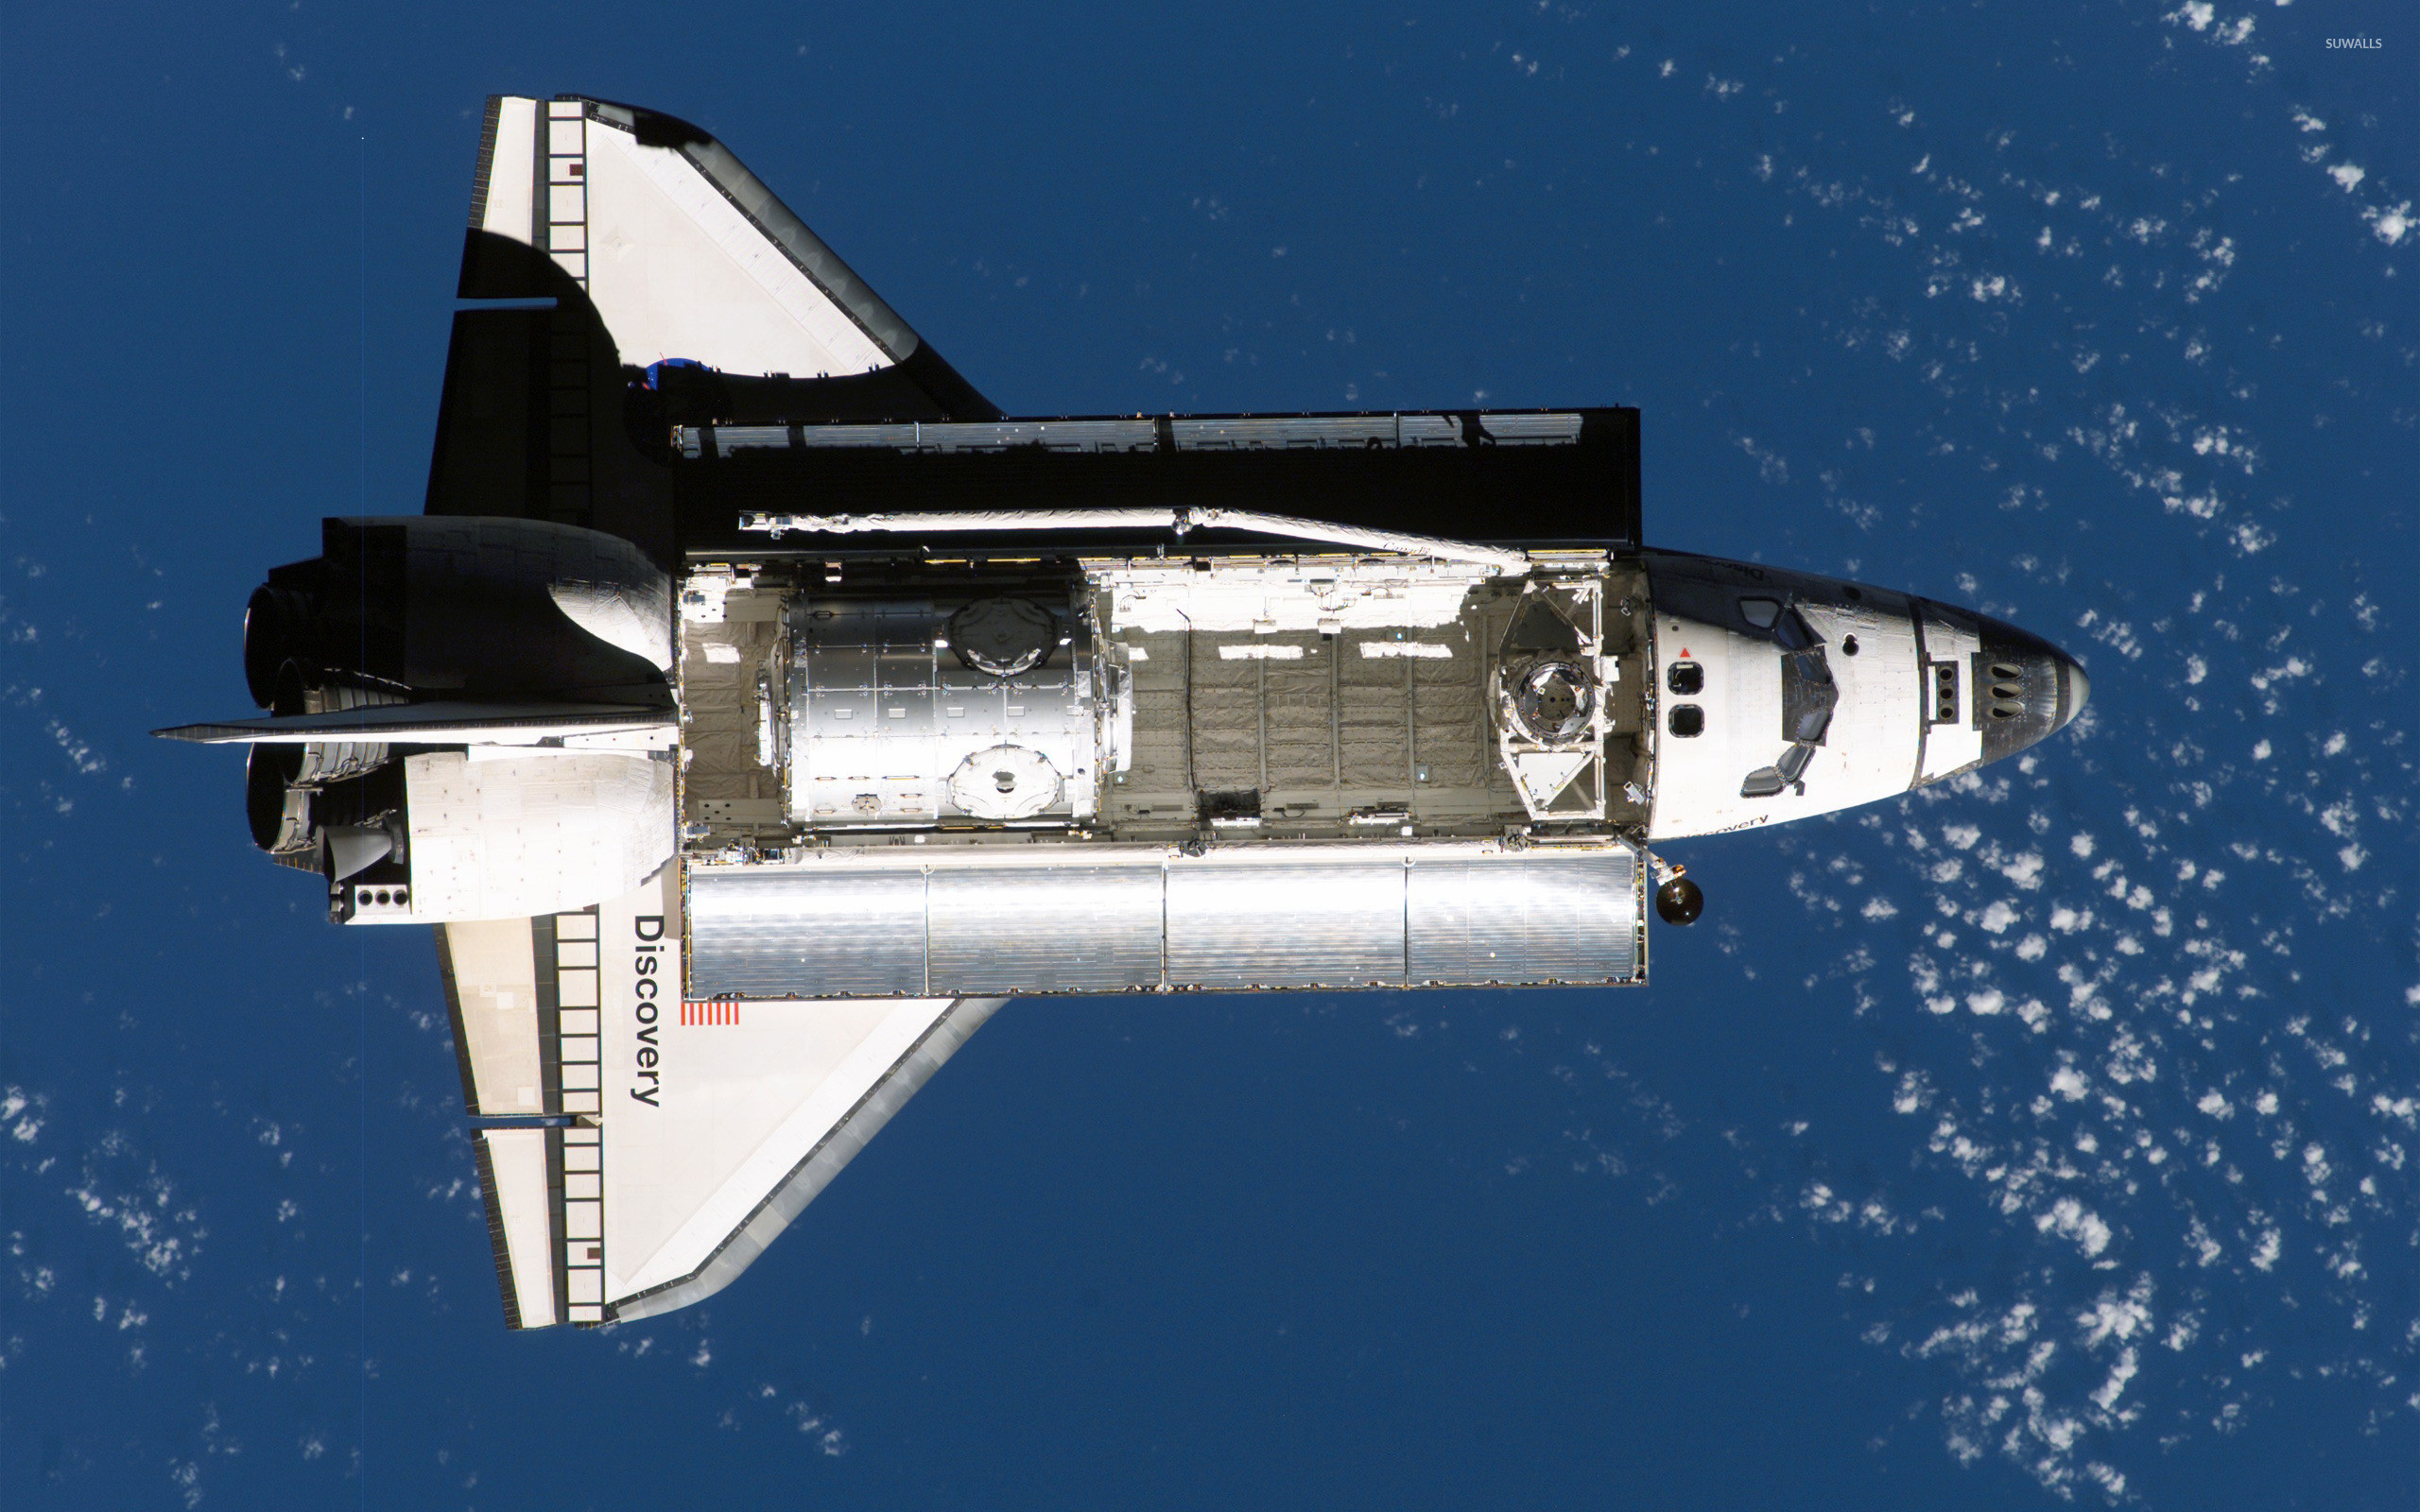 2560x1600 Space Shuttle Discovery wallpaper